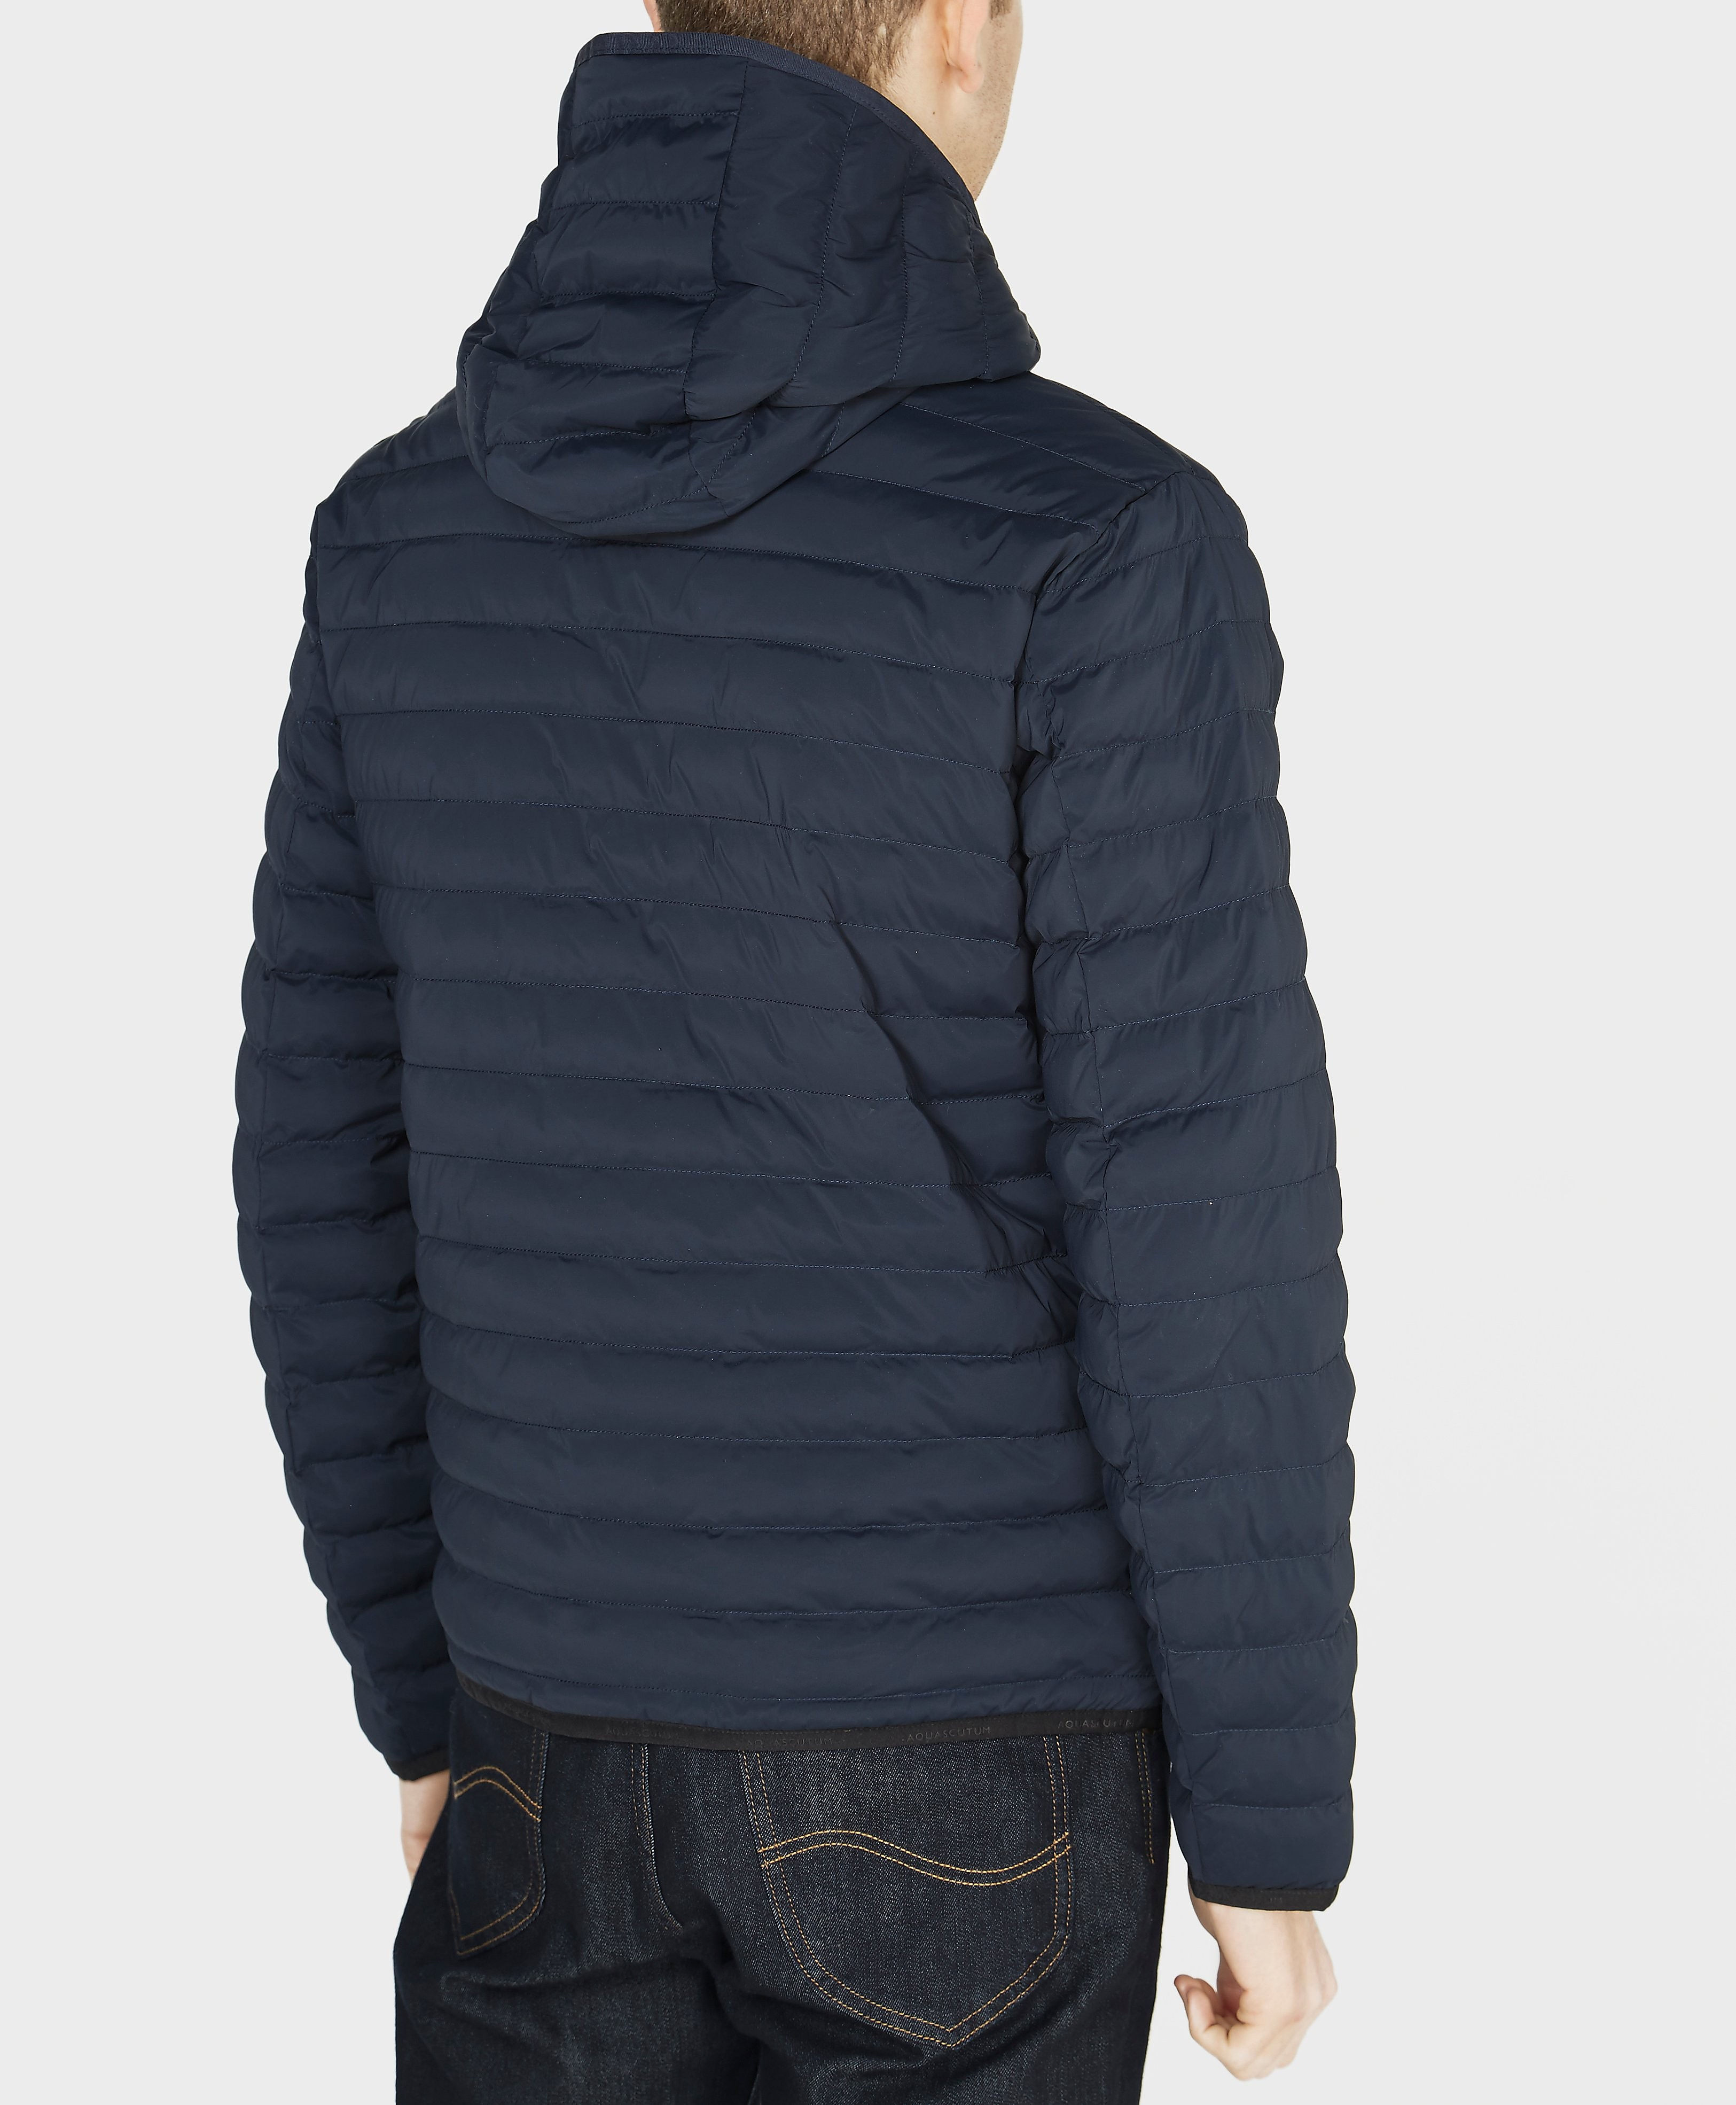 Aquascutum Bubble Jacket